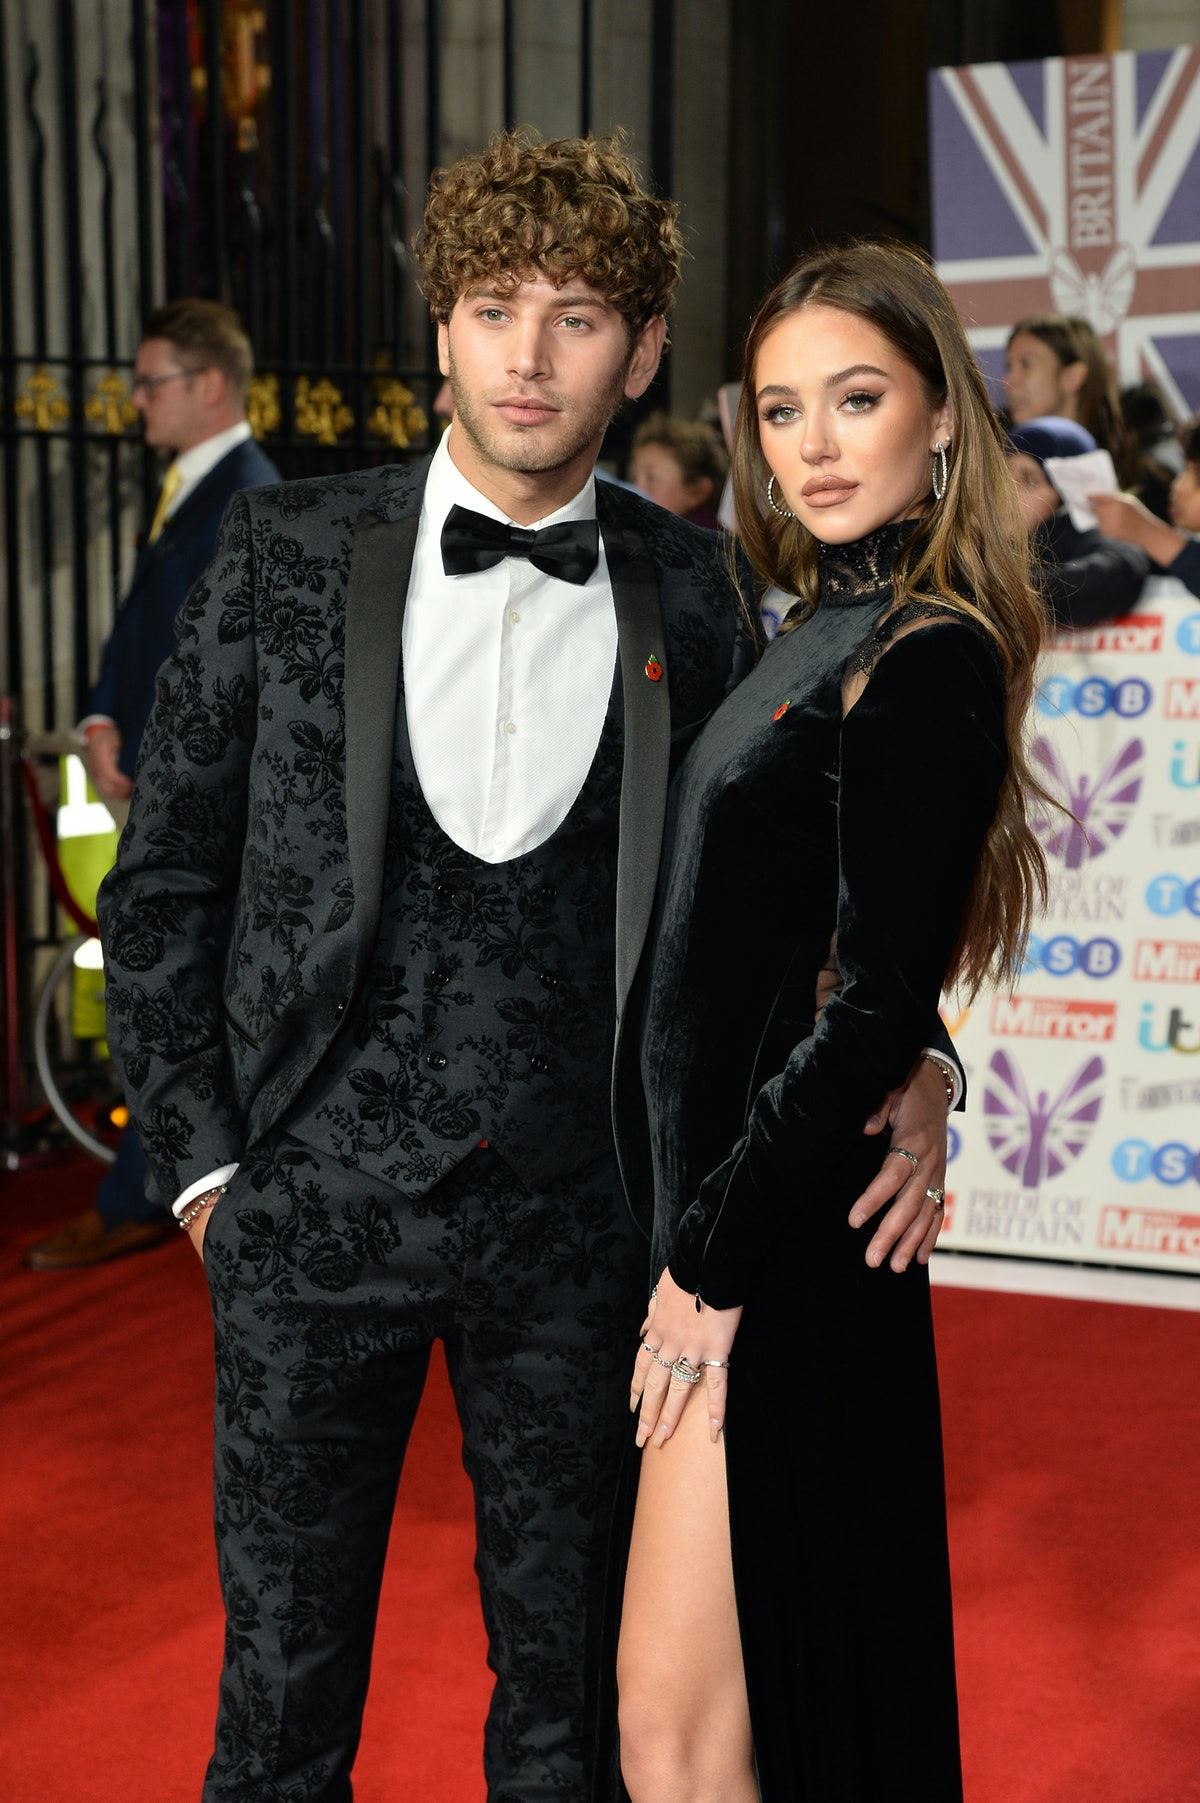 LONDON, ENGLAND - OCTOBER 28: (L-R) Eyal Booker and Delilah Hamlin attend Pride Of Britain Awards 2019 at The Grosvenor House Hotel on October 28, 2019 in London, England. (Photo by Jeff Spicer/Getty Images)